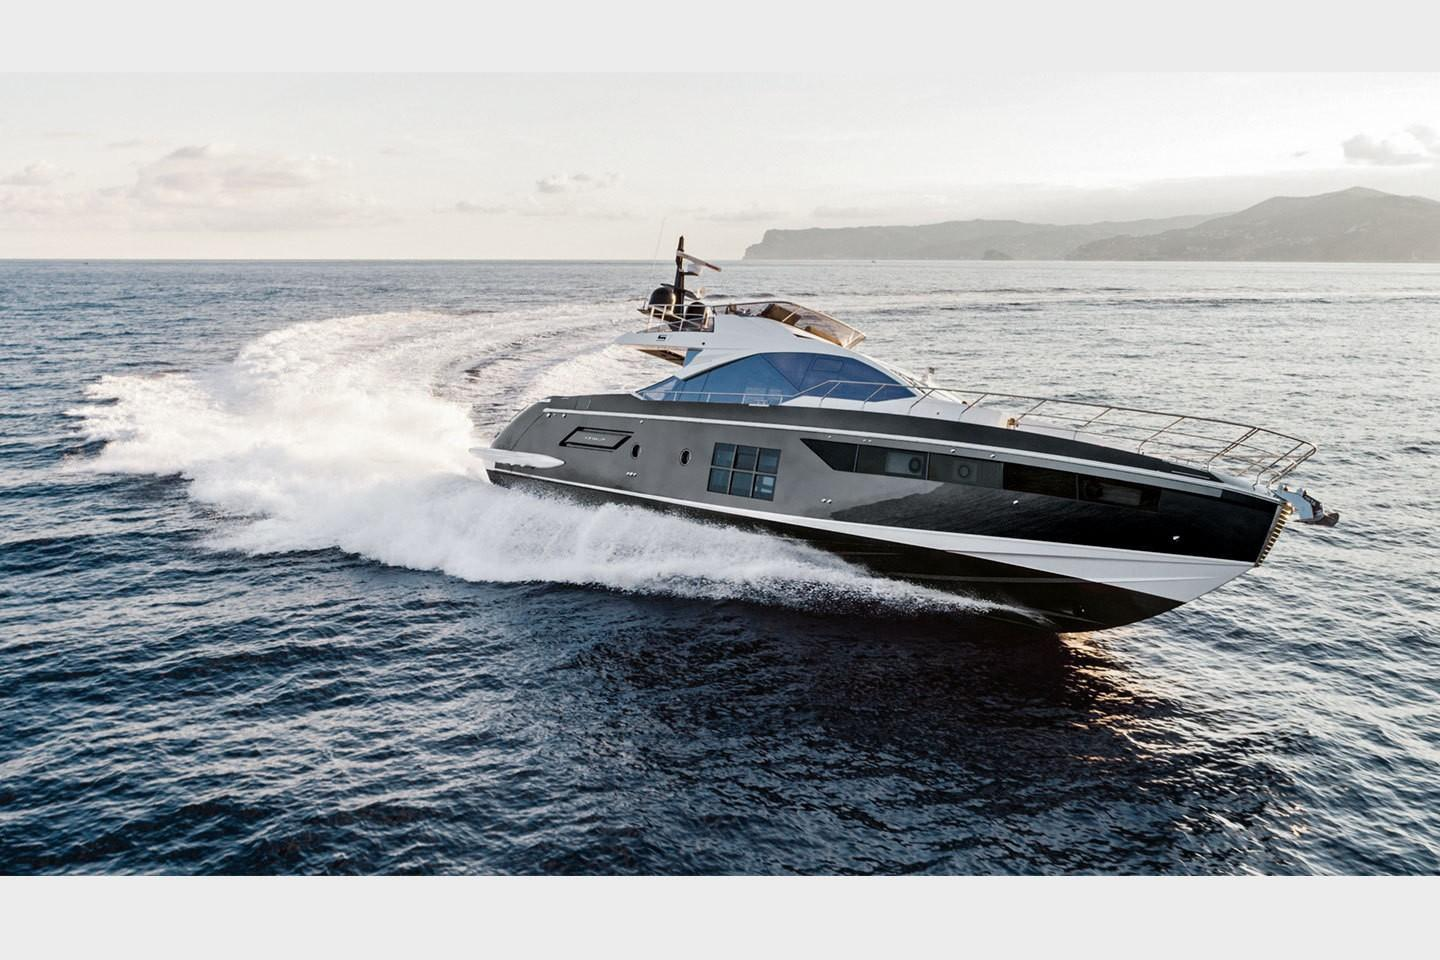 Thumbnail 3 for 2021 Azimut S7